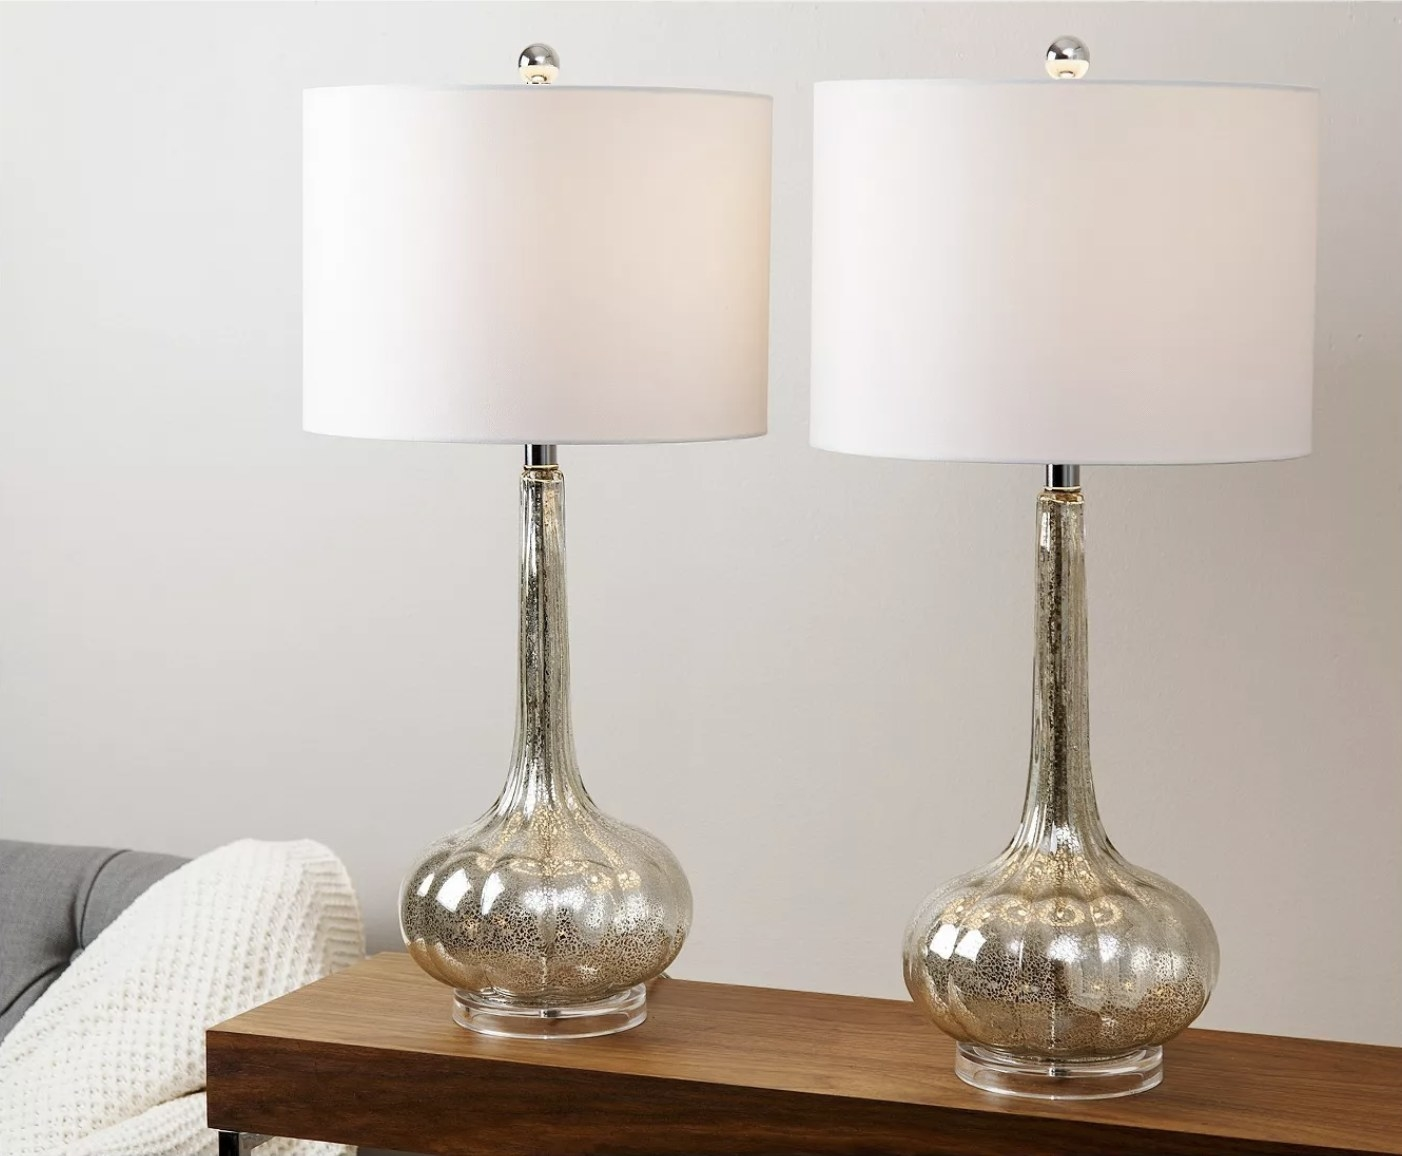 A set of two table lamps in a living room with an antique glass base and white shades